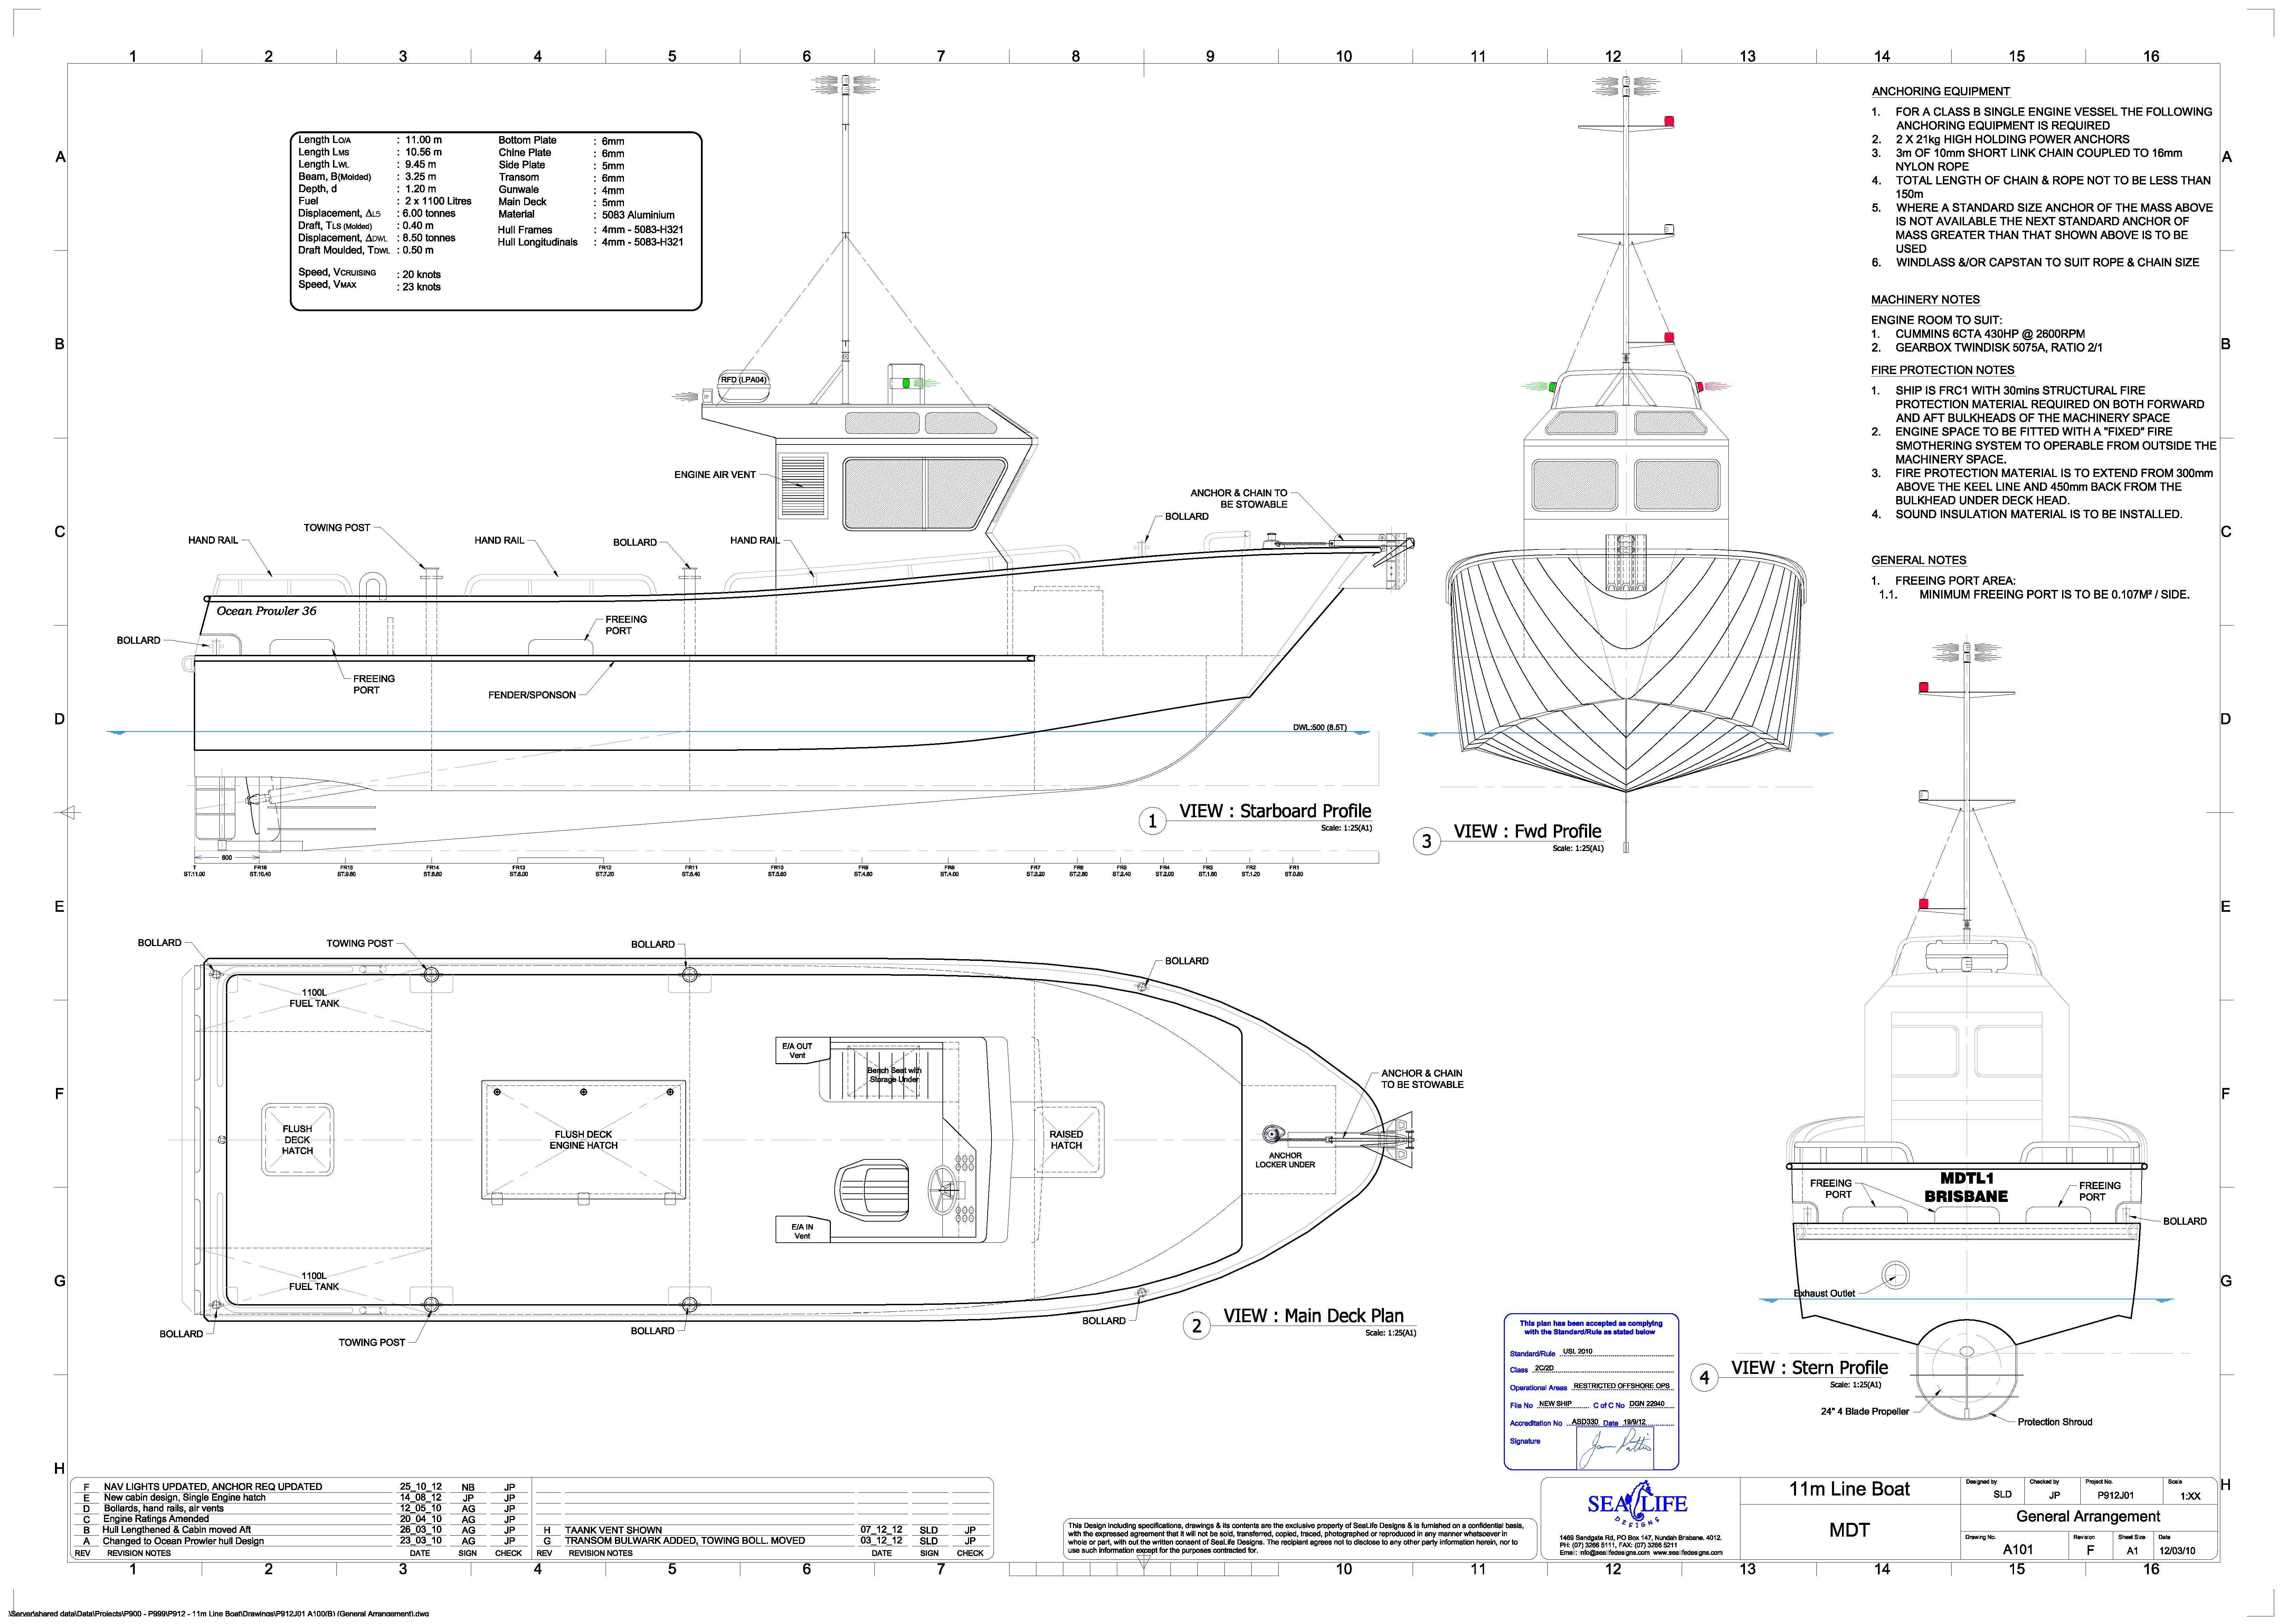 General Diagram Of Boat Wiring Libraries Taskmaster F1f5105n Electrical P912 P1272 U2013 11m Line Naval Architects Australiageneral 20